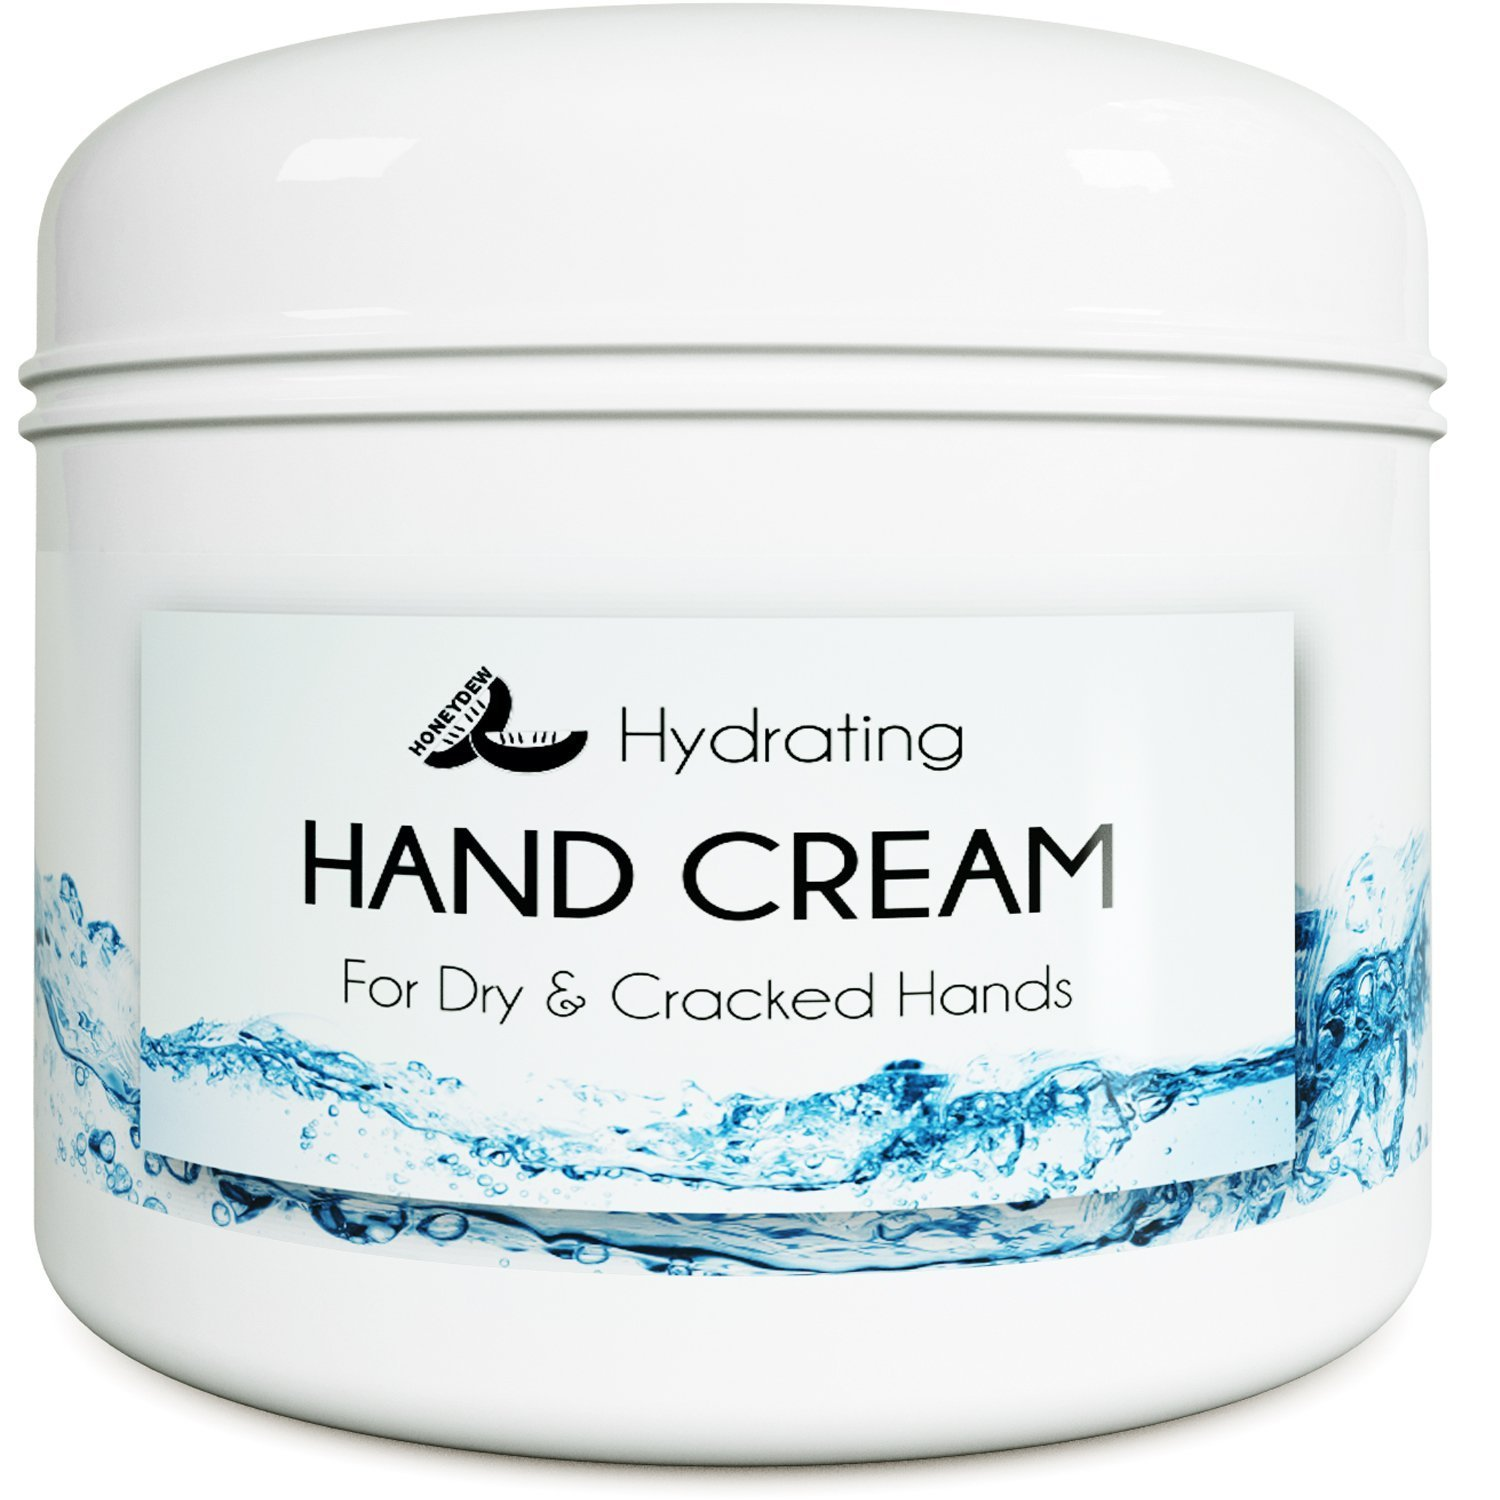 No Crack Hand Cream For Dry Hands - Anti-Aging Hydrating Hand Treatment For Working Hands With Pure Cocoa Butter + Avocado Oil + Jojoba Oil + Rosehip Oil + Vitamin E Hand Repair For Women and Men by Honeydew